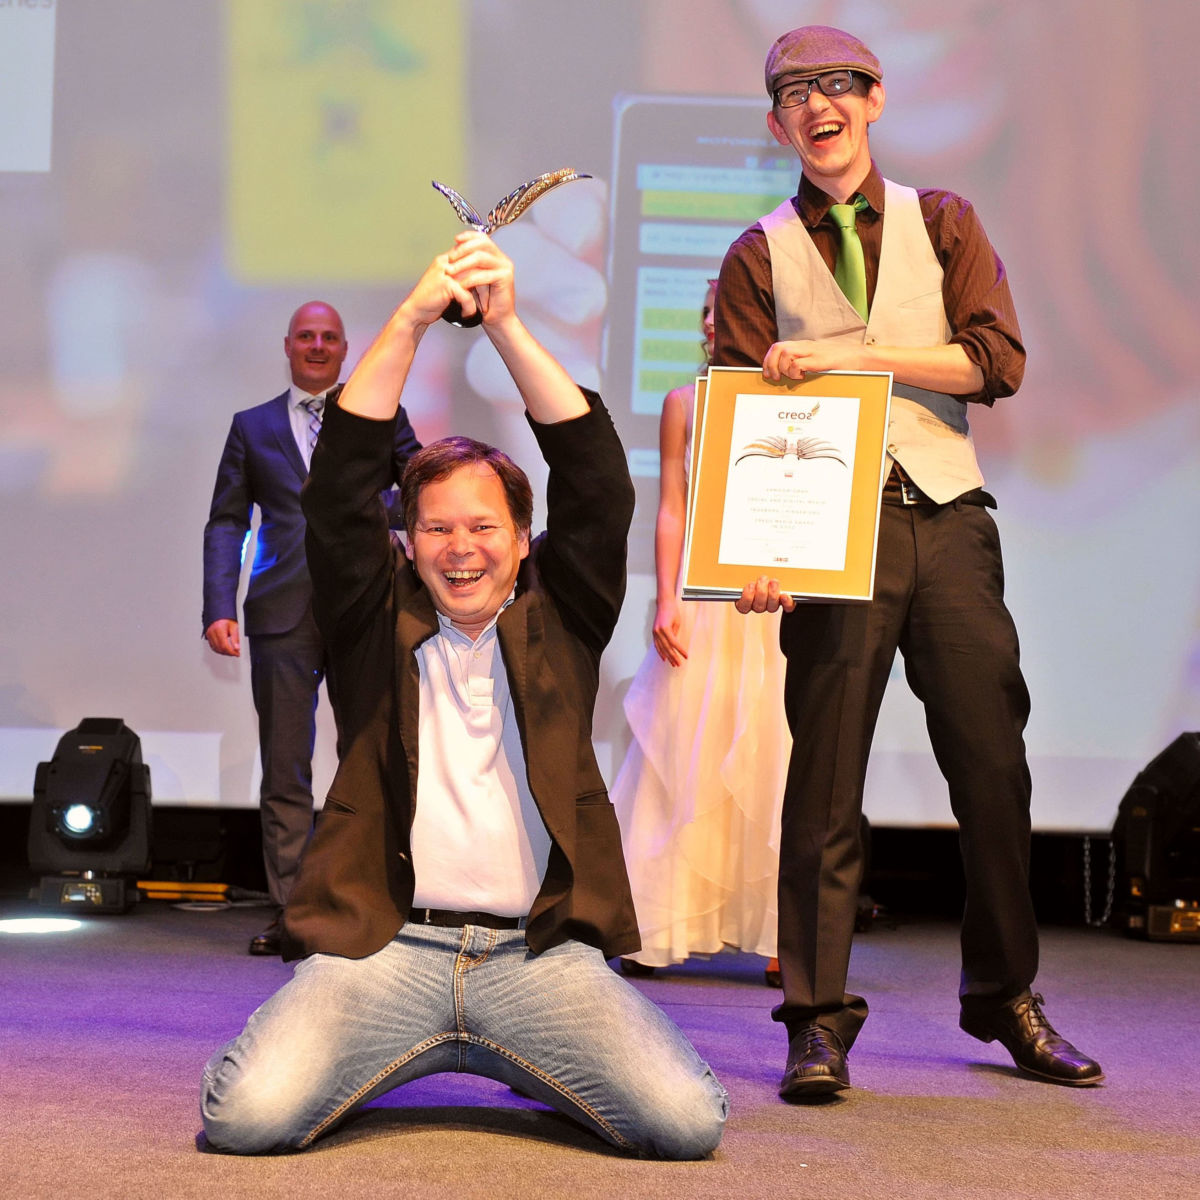 Georg and Bruno pose as winners of a CREOS award in gold